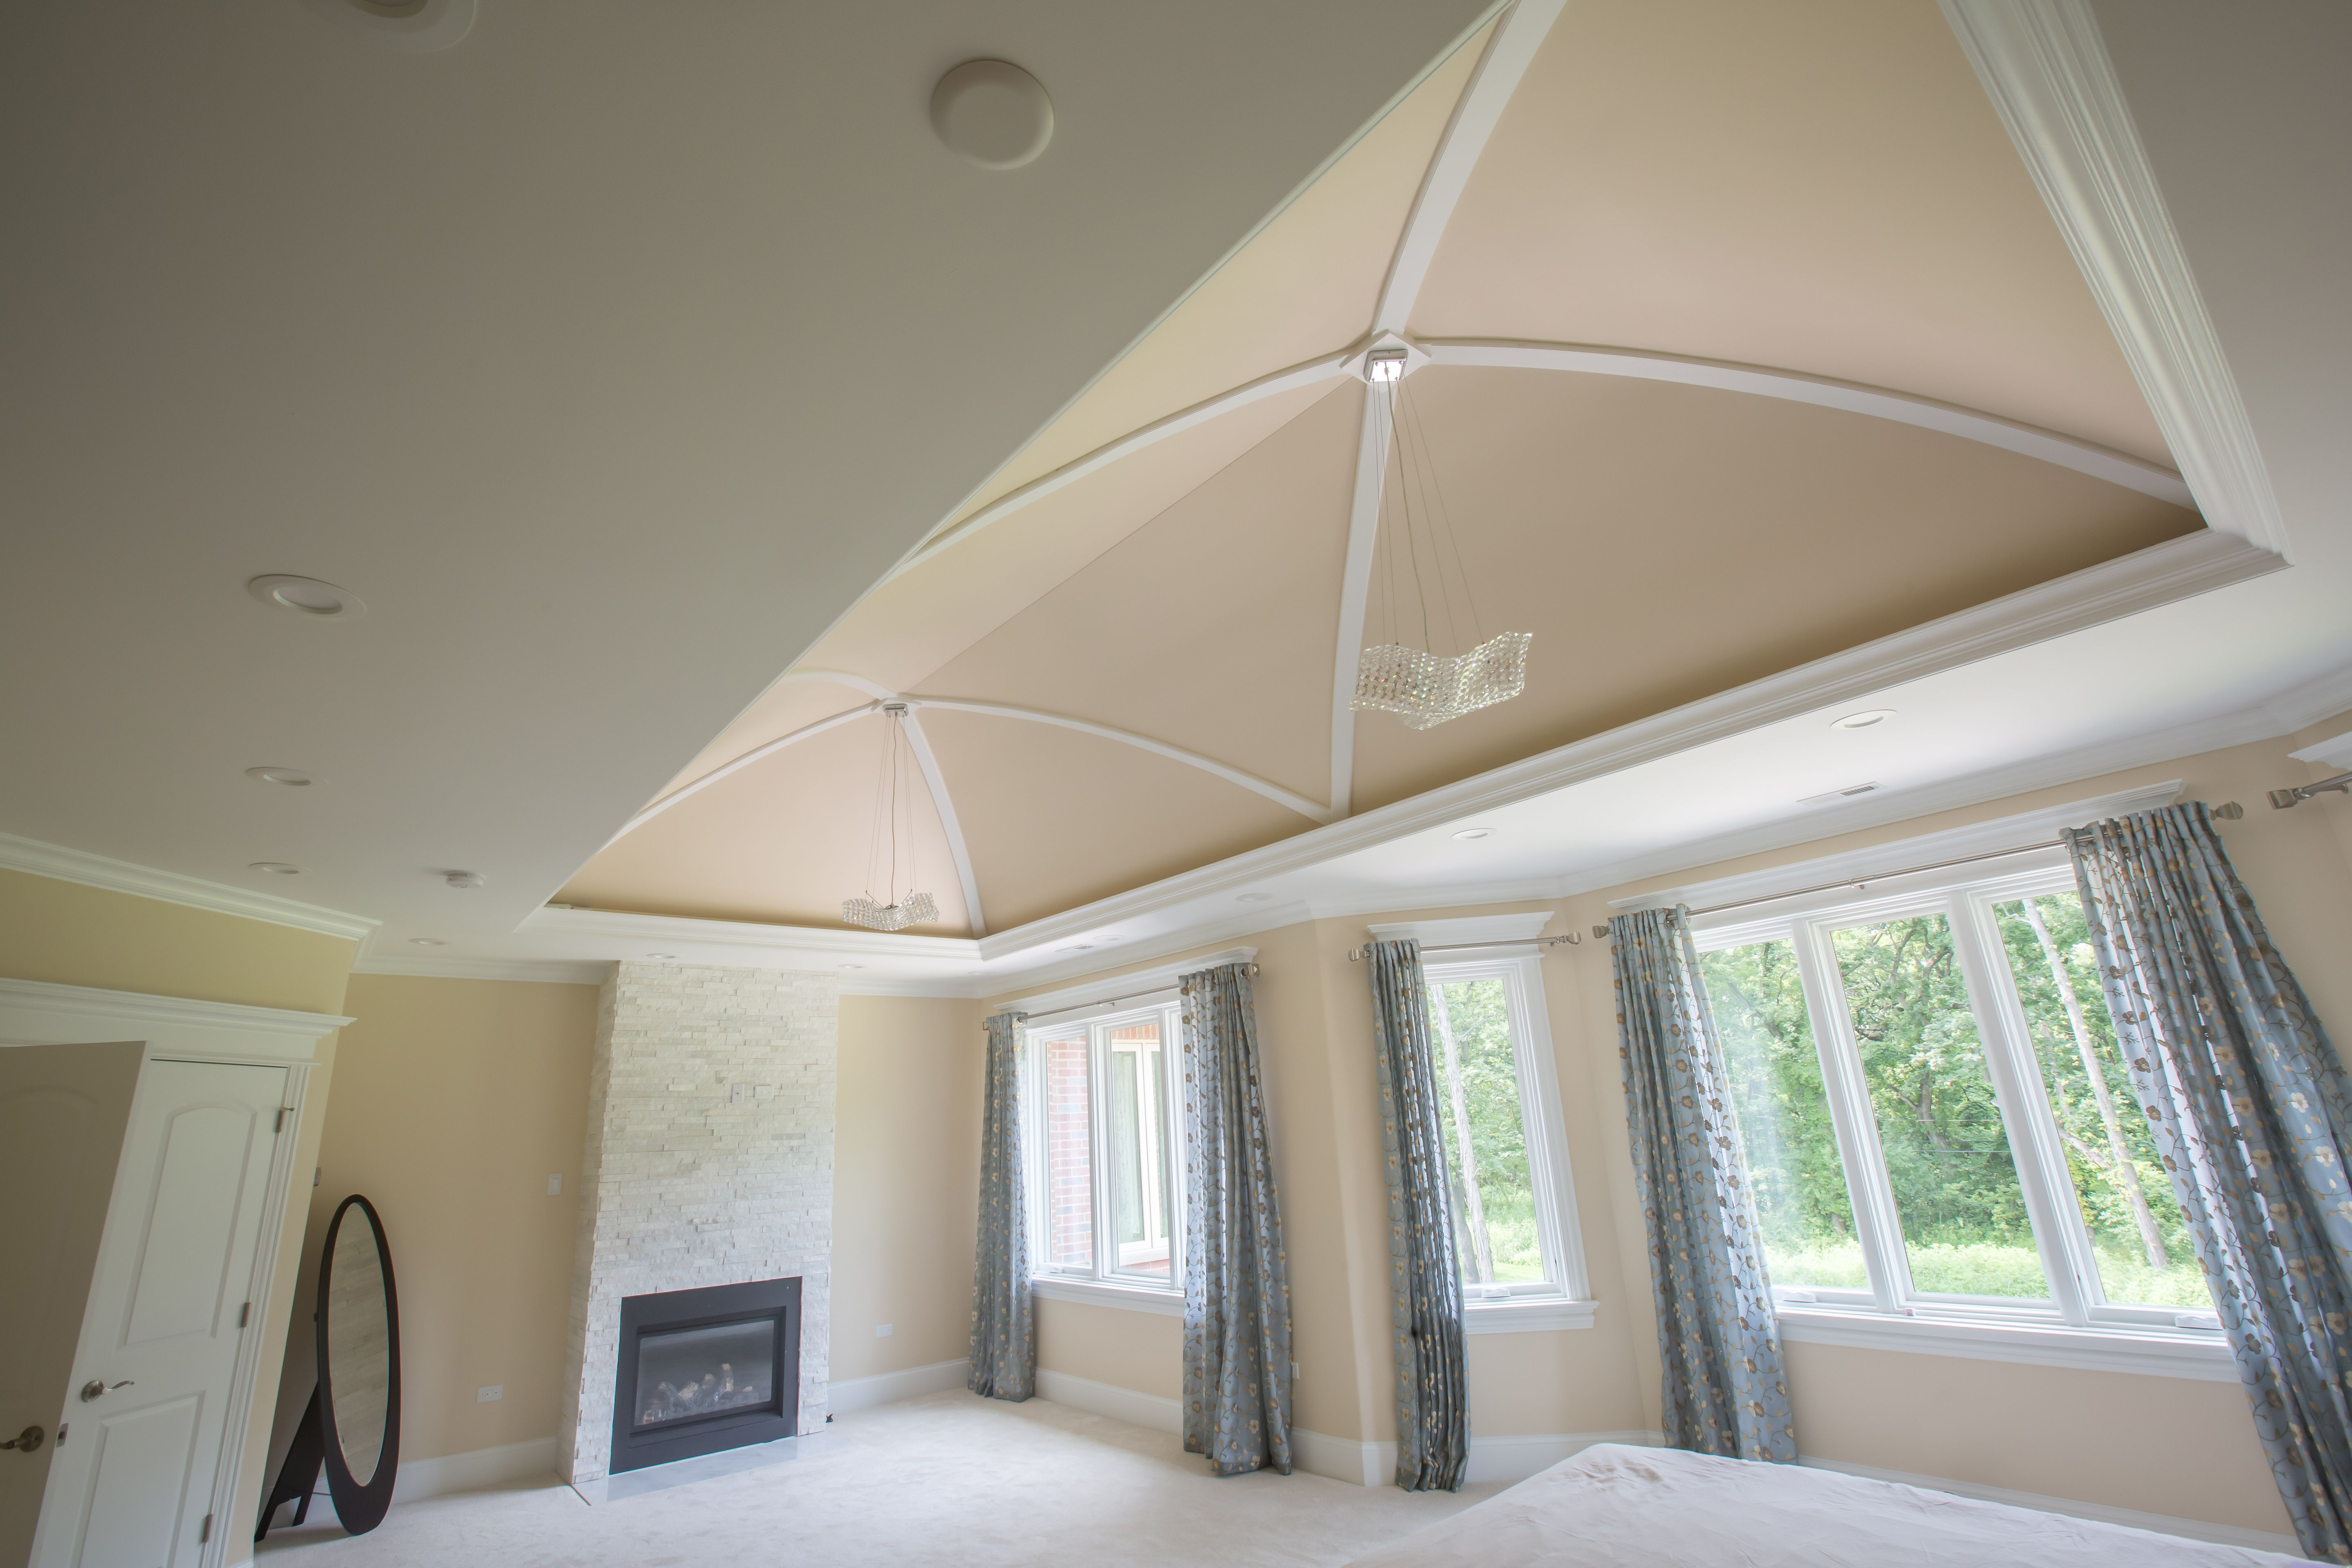 styles tray molding walls moulding ideas painted ceiling decorative with pranksenders install hbm simple and blog how house crown wall designs depot home to bedroom corners for types ceilings